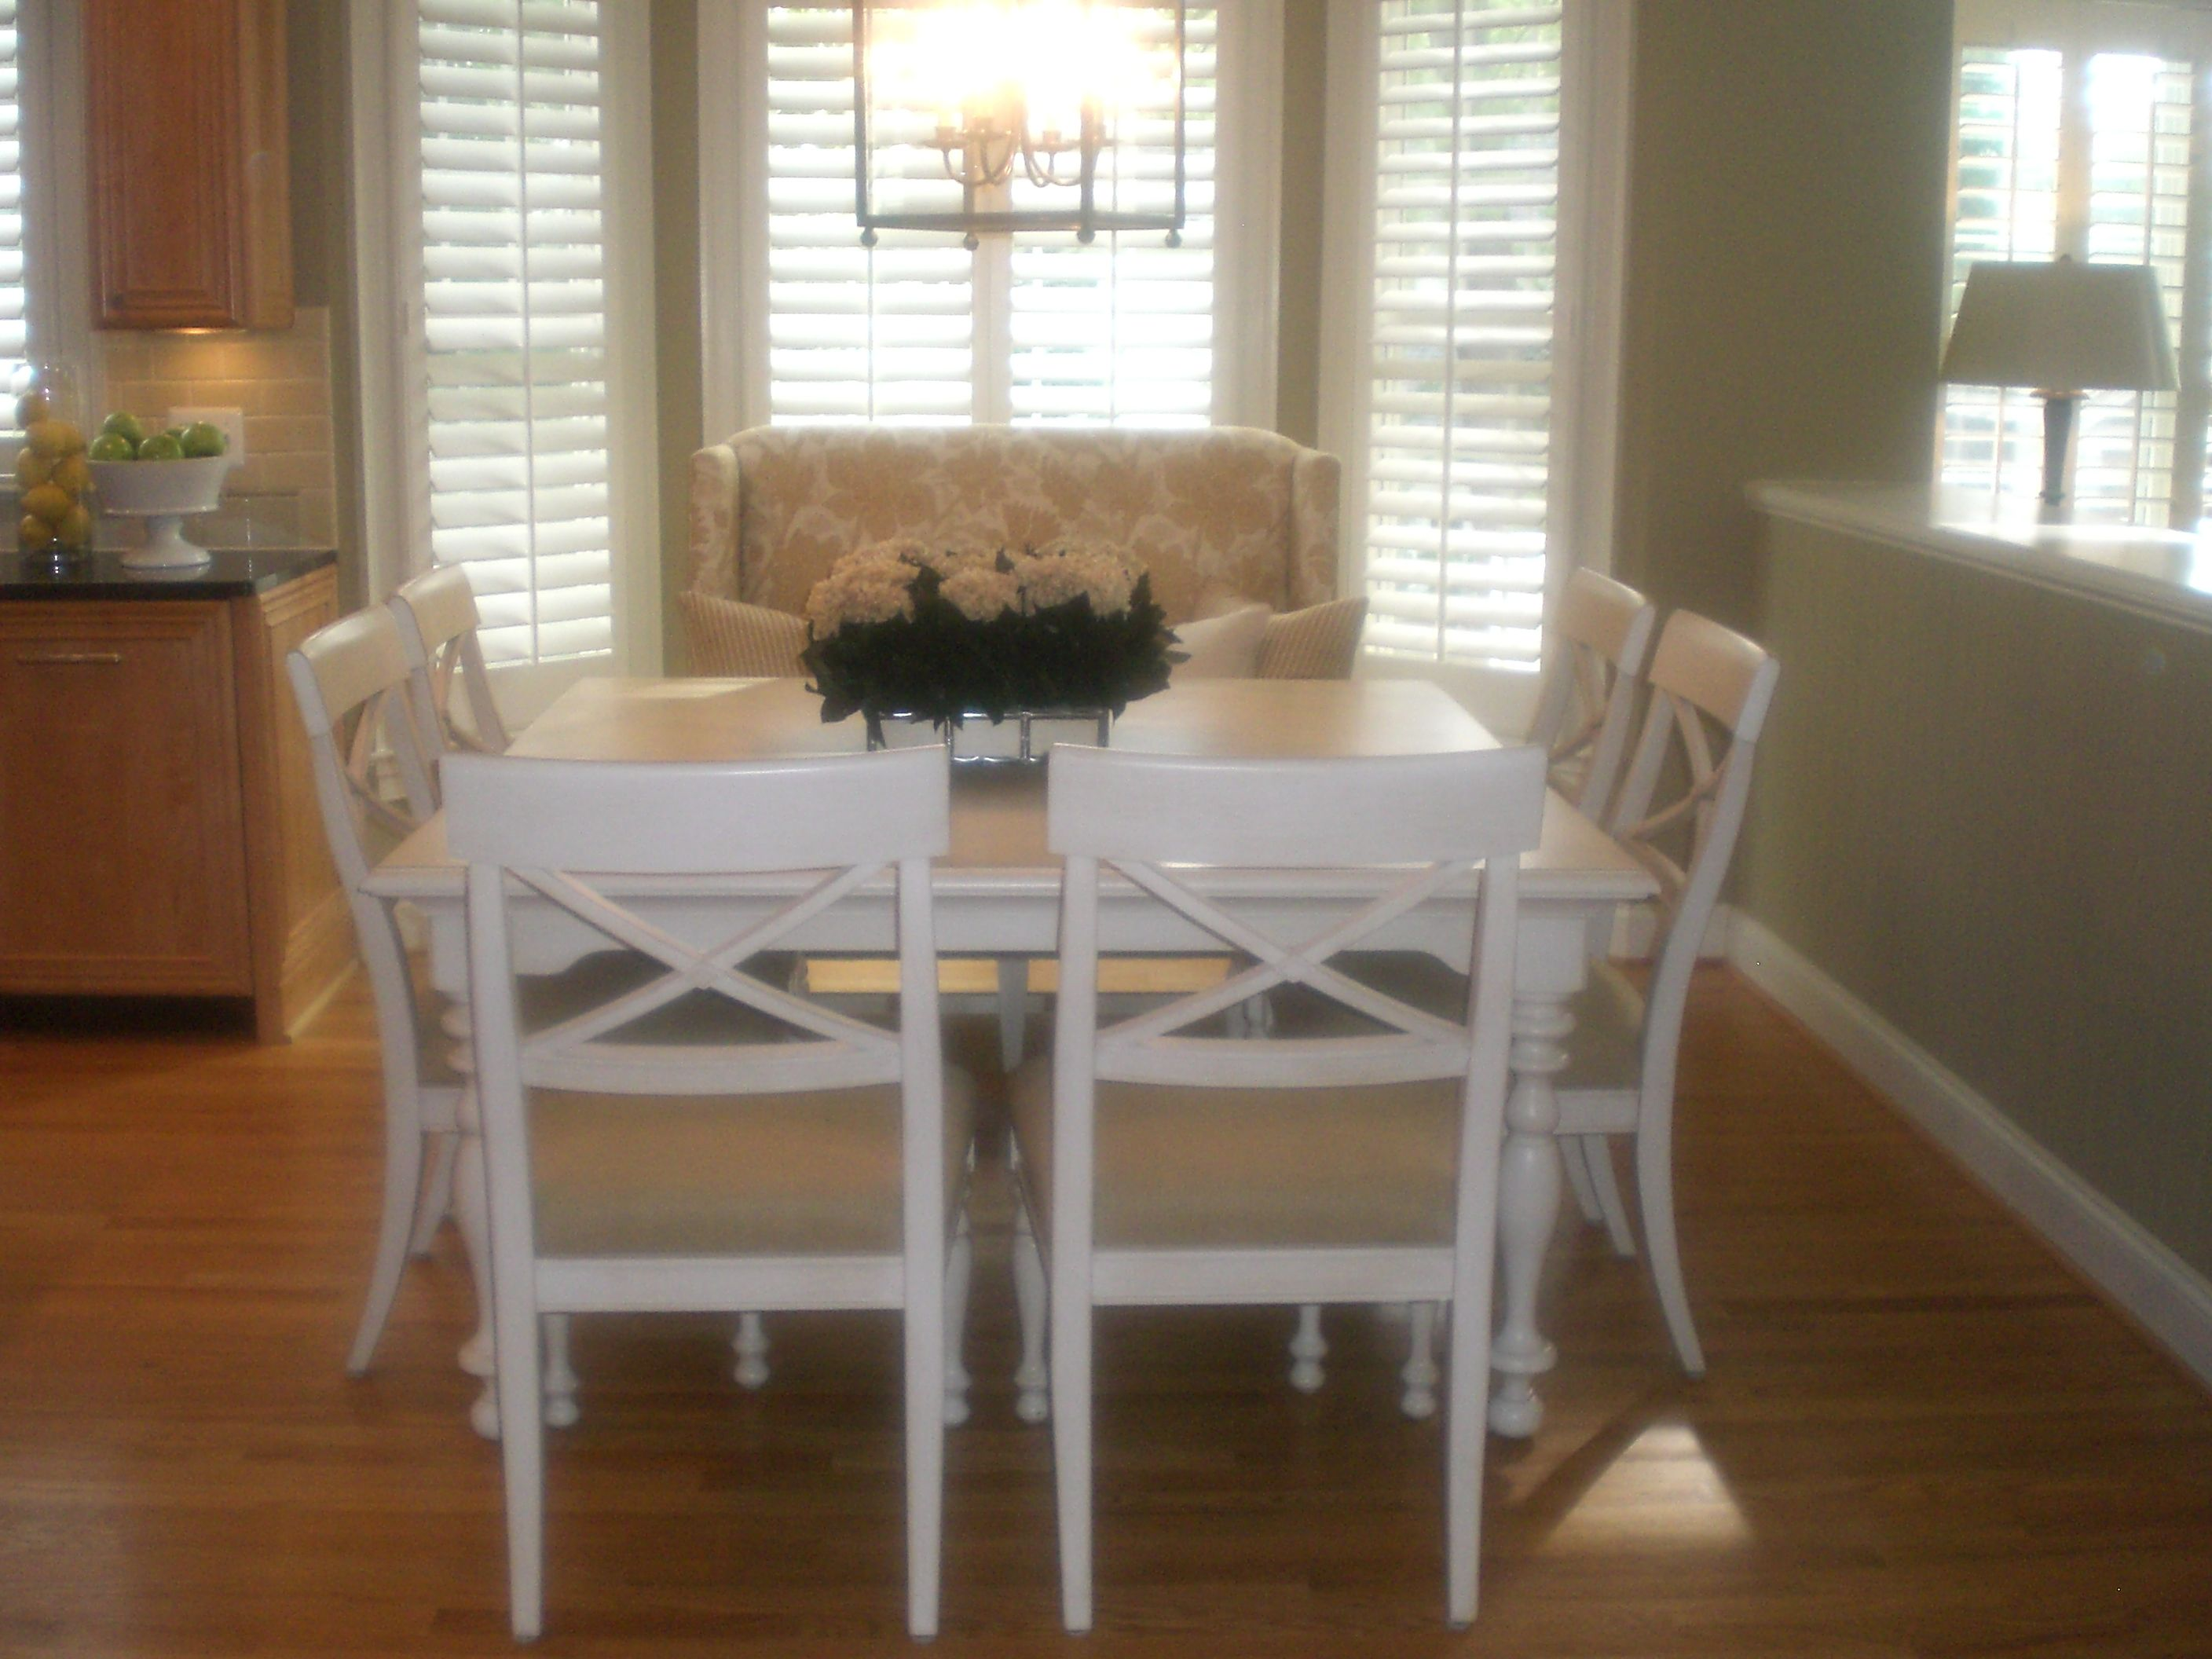 Kitchen Area In Virginiasquare Table And Settee  Kristin Mesmerizing Dining Room Table With Settee Decorating Design